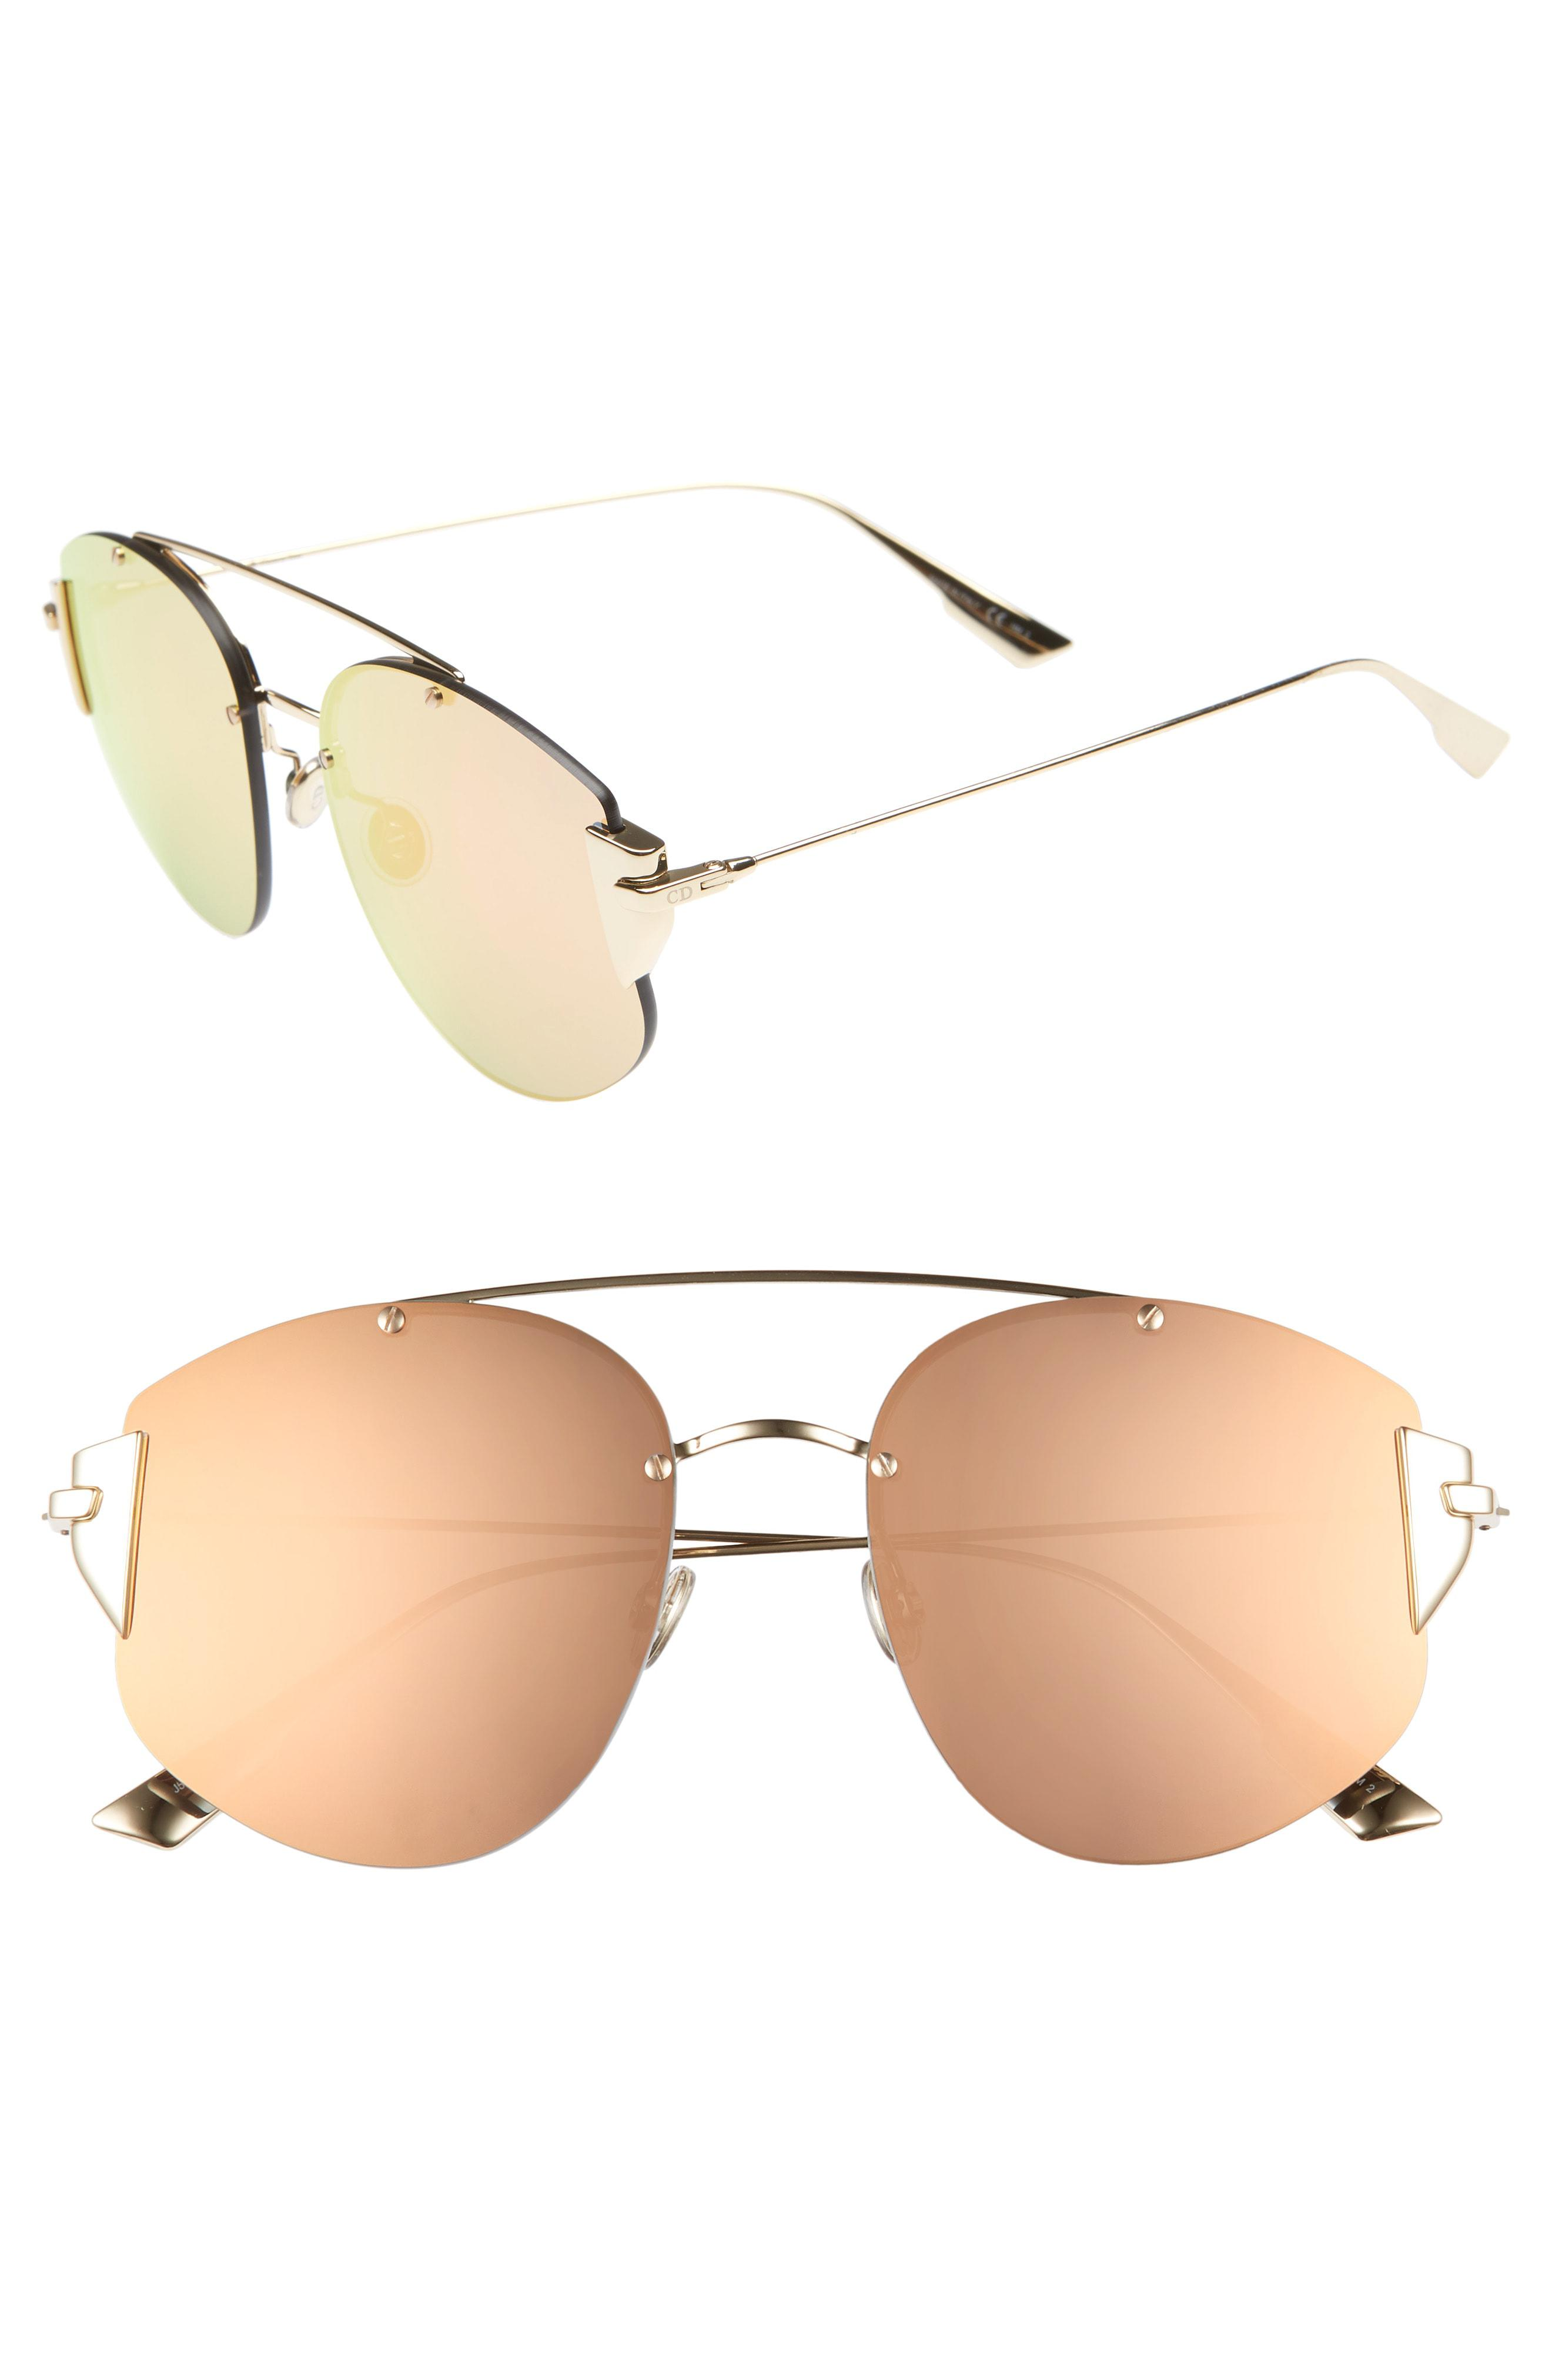 c2e388e4cb7 Dior. Women s Christian Stronger 58mm Rounded Aviator Sunglasses -